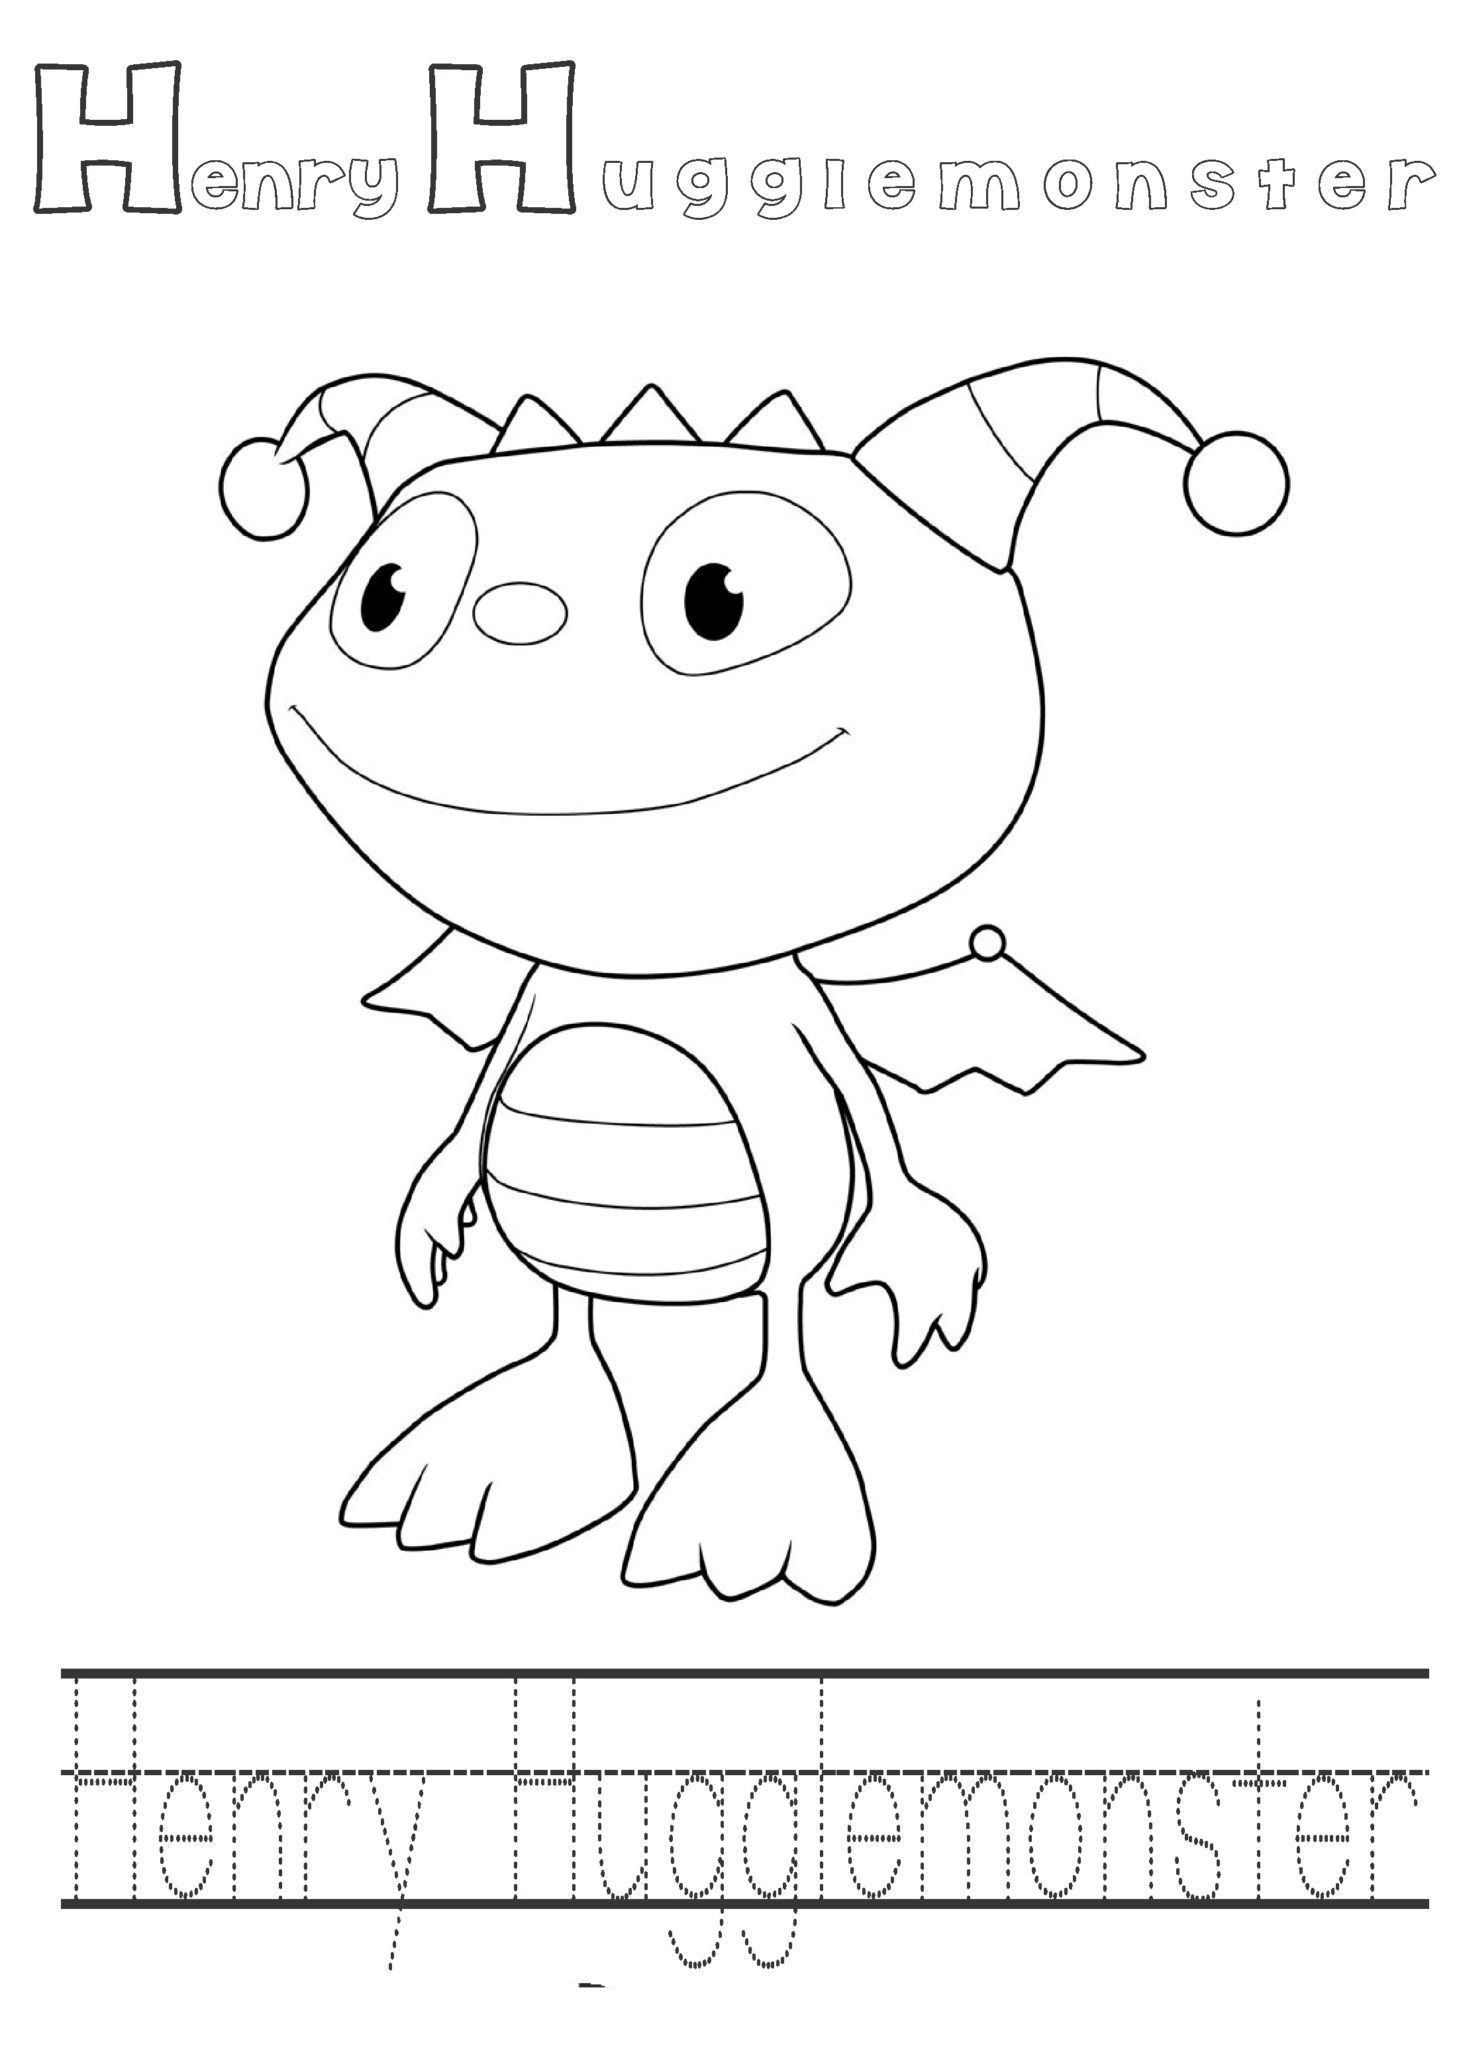 Worksheets Henry And Mudge Worksheets henry hugglemoster printable coloring pages kids pages